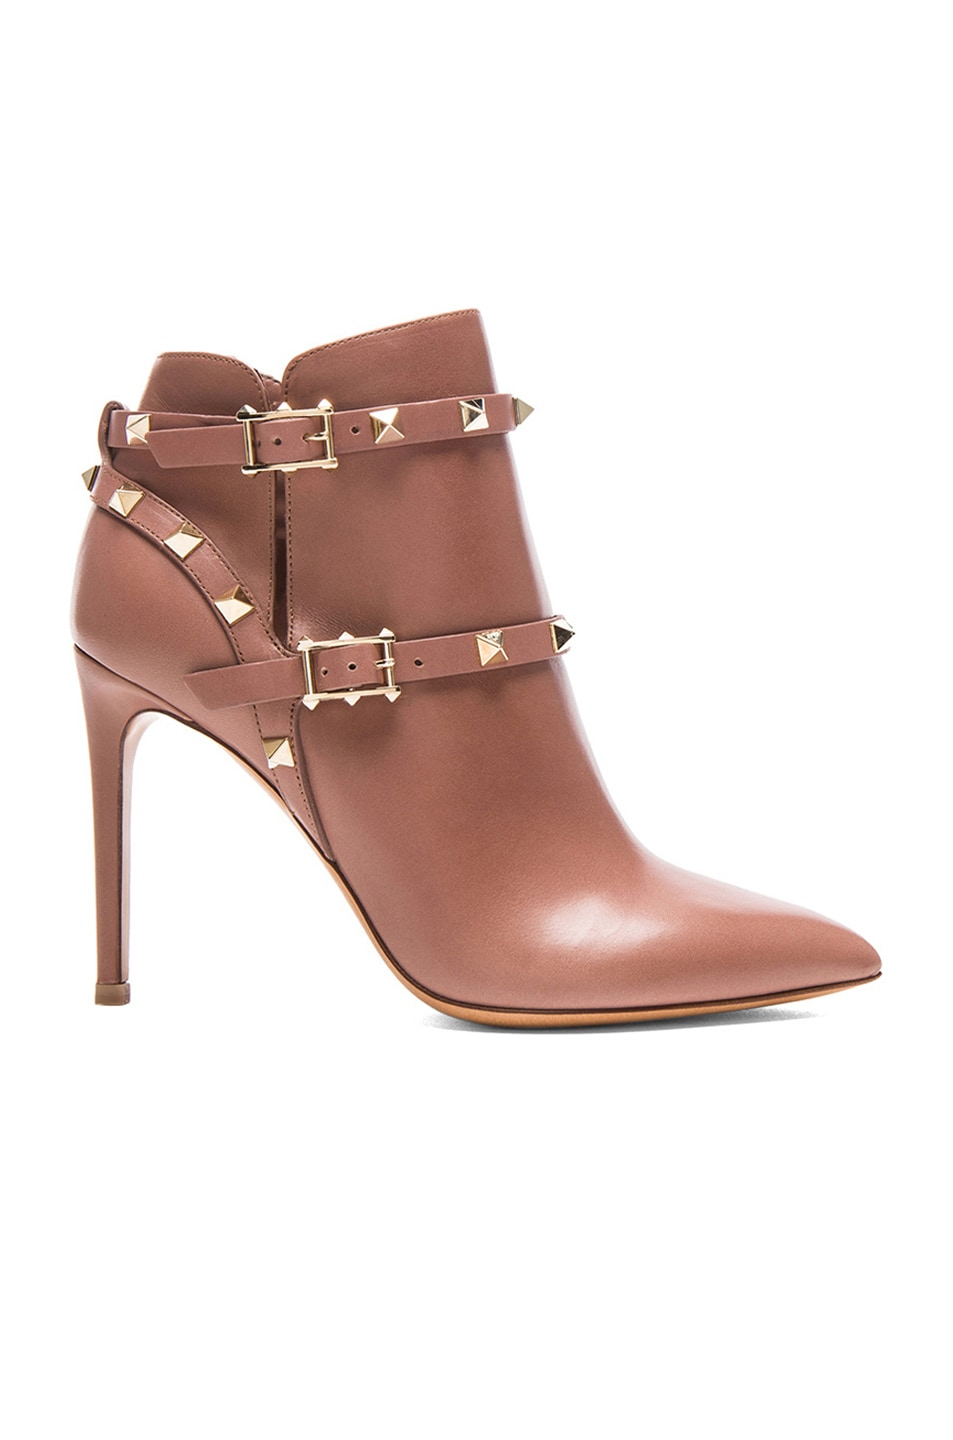 Image 1 of Valentino Rockstud Leather Booties T.100 in Brownish Orange